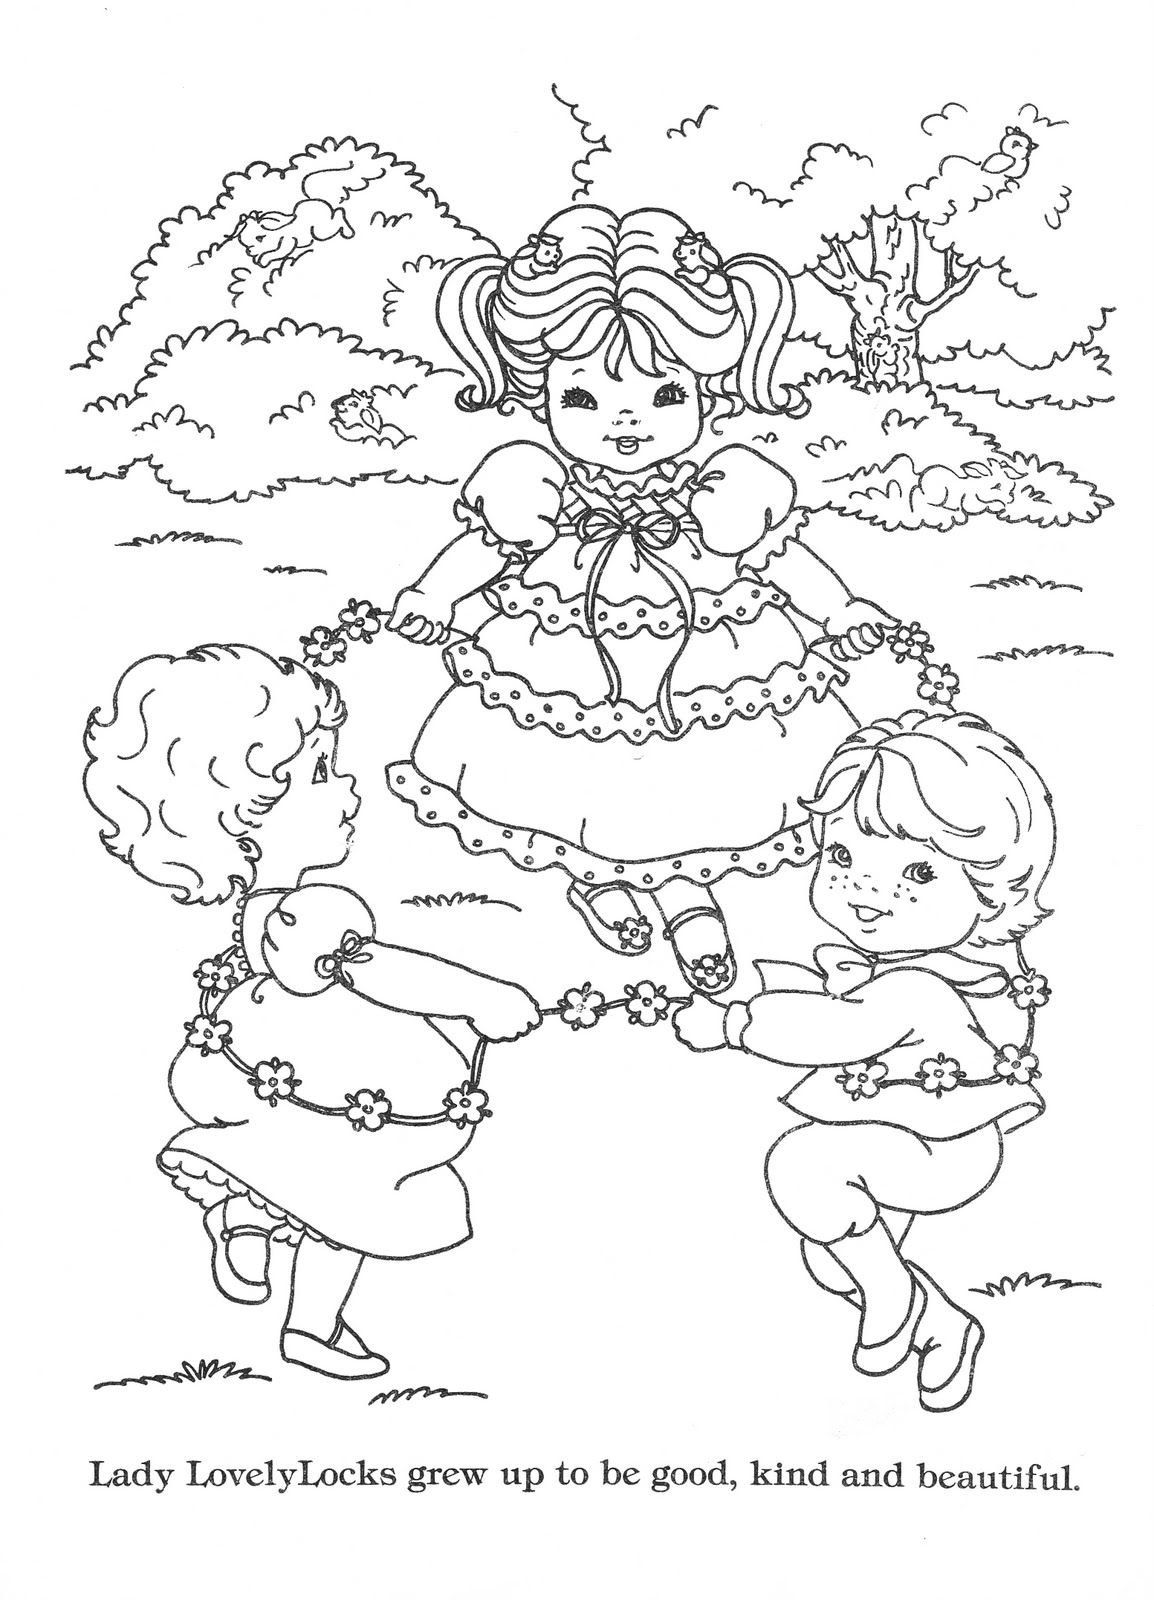 lady lovely locks coloring book lady lovely locks the begining edited for printing - Coloring Book Printing